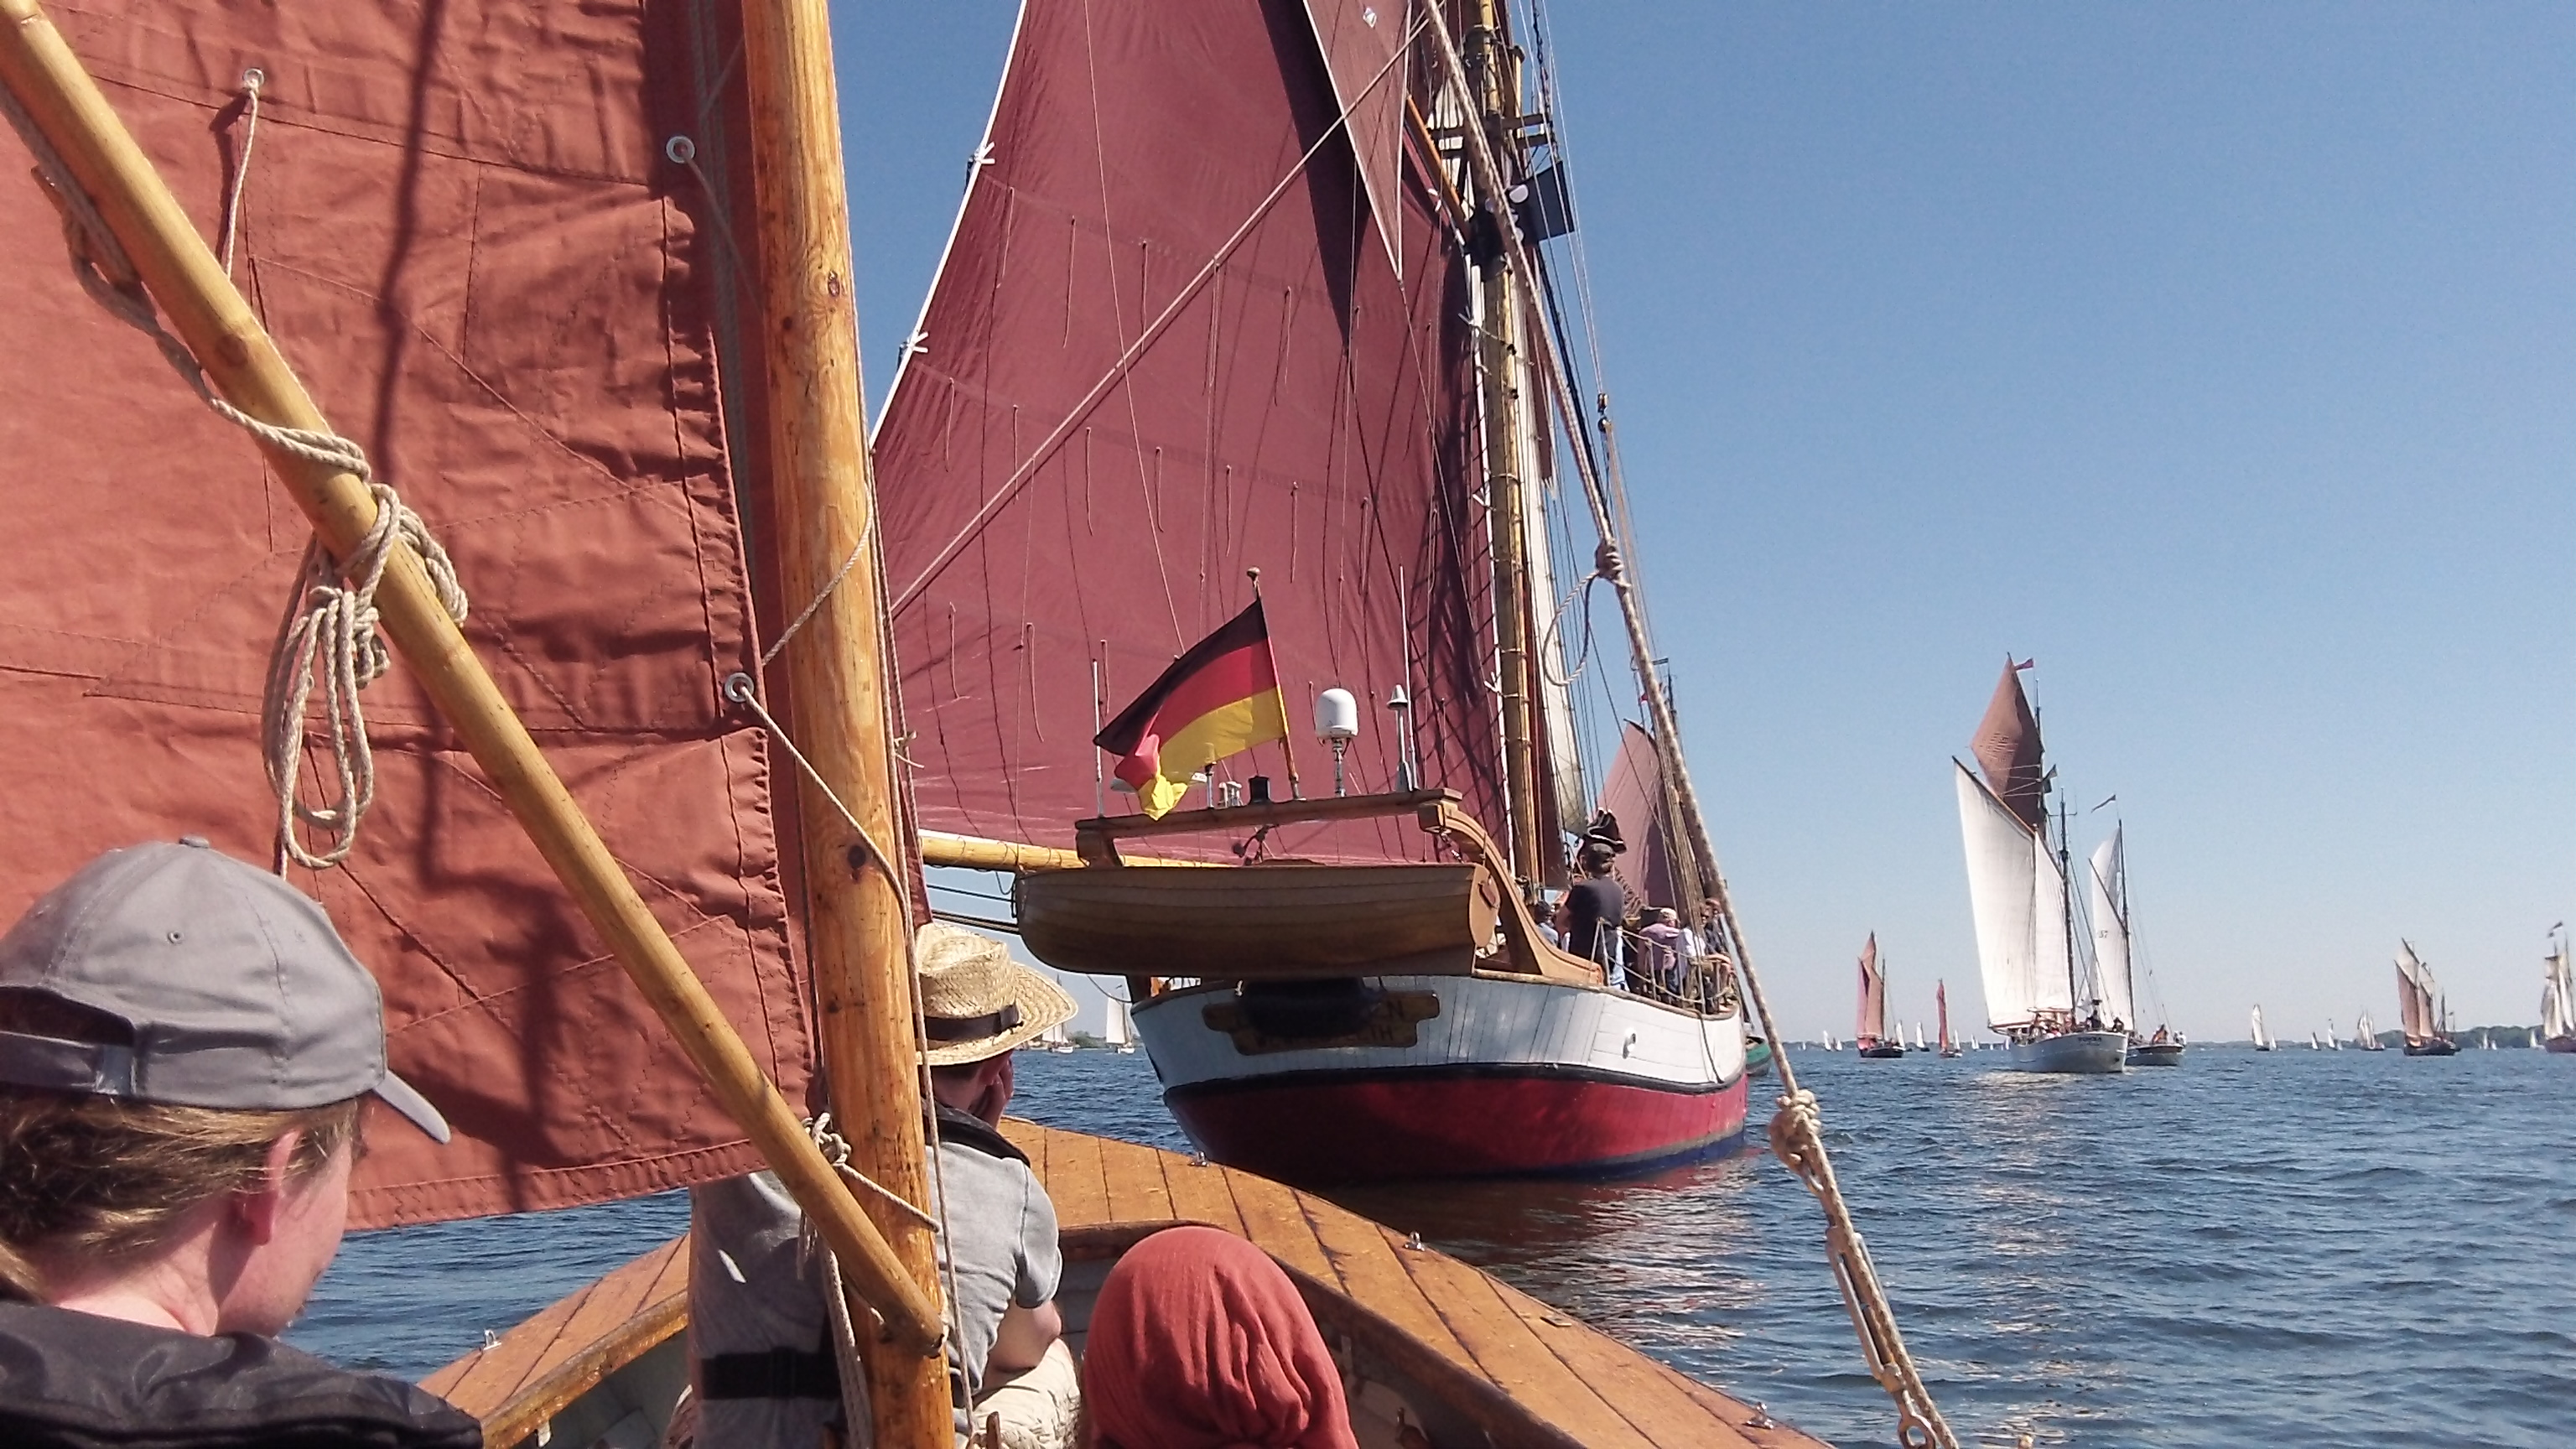 04_Foto_Rum-Regatta and Flensburg's intangible MCH_PrivatDZ.jpg